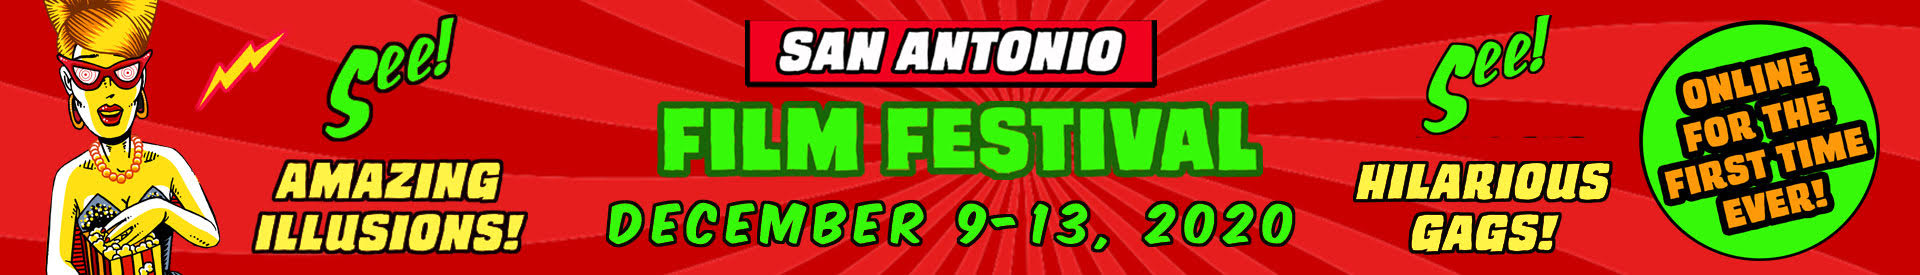 26th San Antonio Film Festival Dec. 9-13